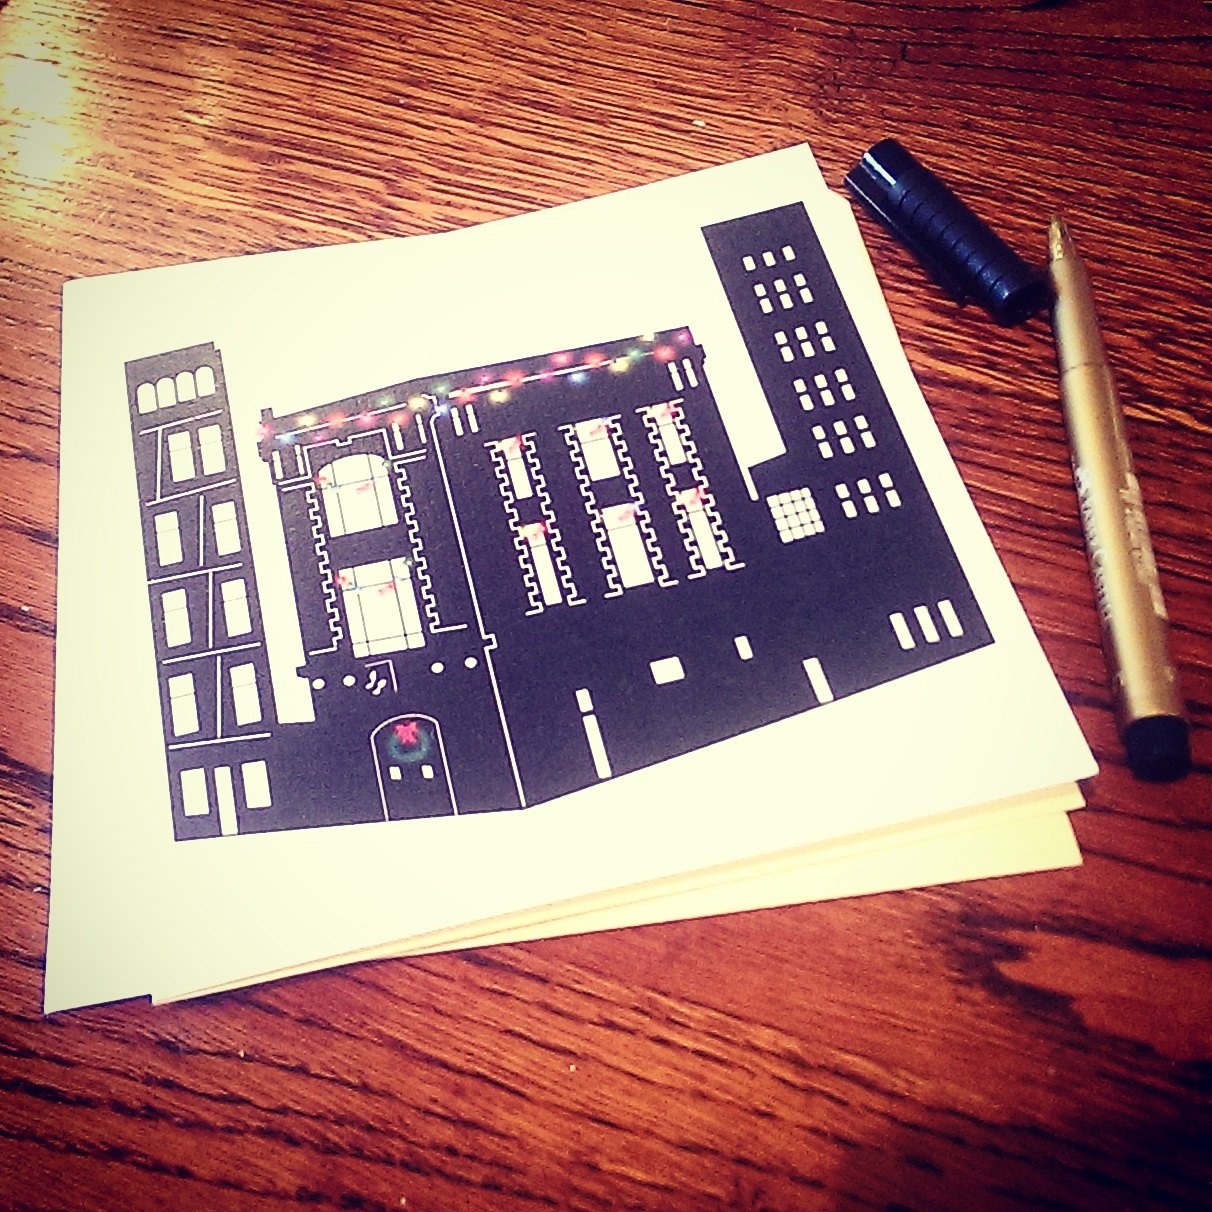 Ghostbusters Fire House, Ghostbusters HQ, Christmas Card, Seasons greetings - ByCandlelight27